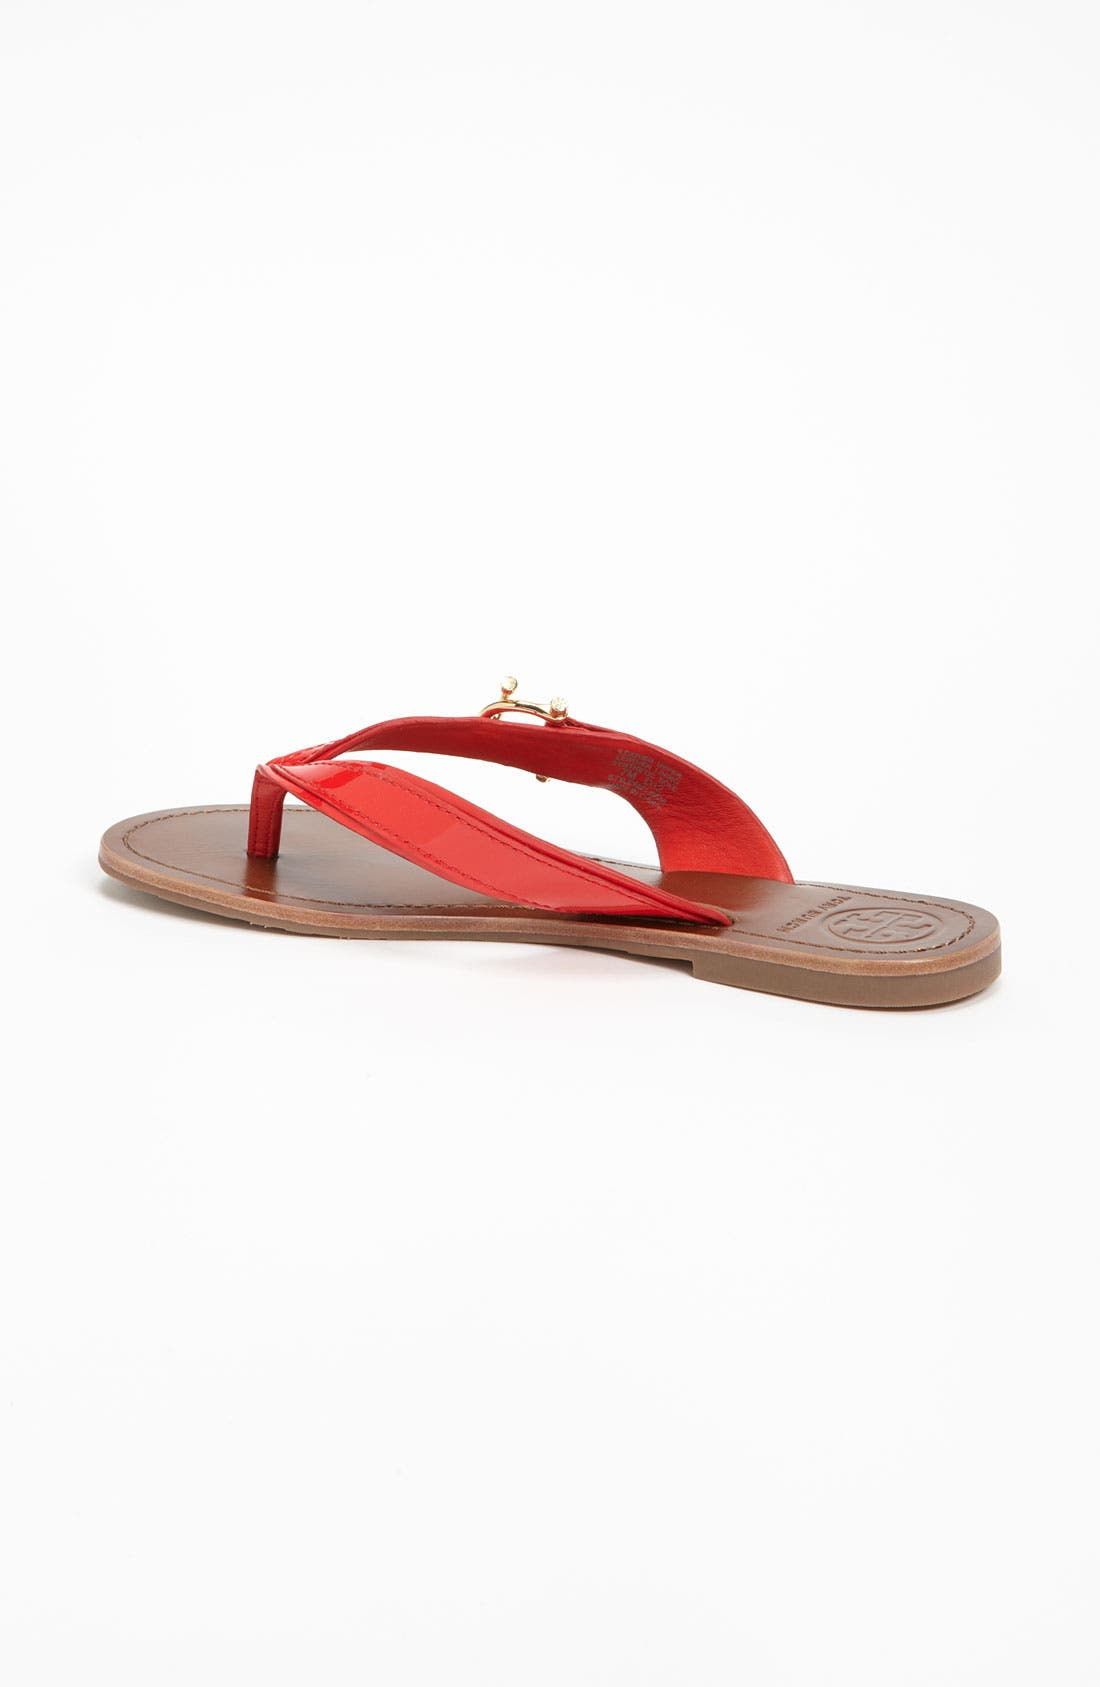 Alternate Image 2  - Tory Burch 'Nora' Sandal (Nordstrom Exclusive)